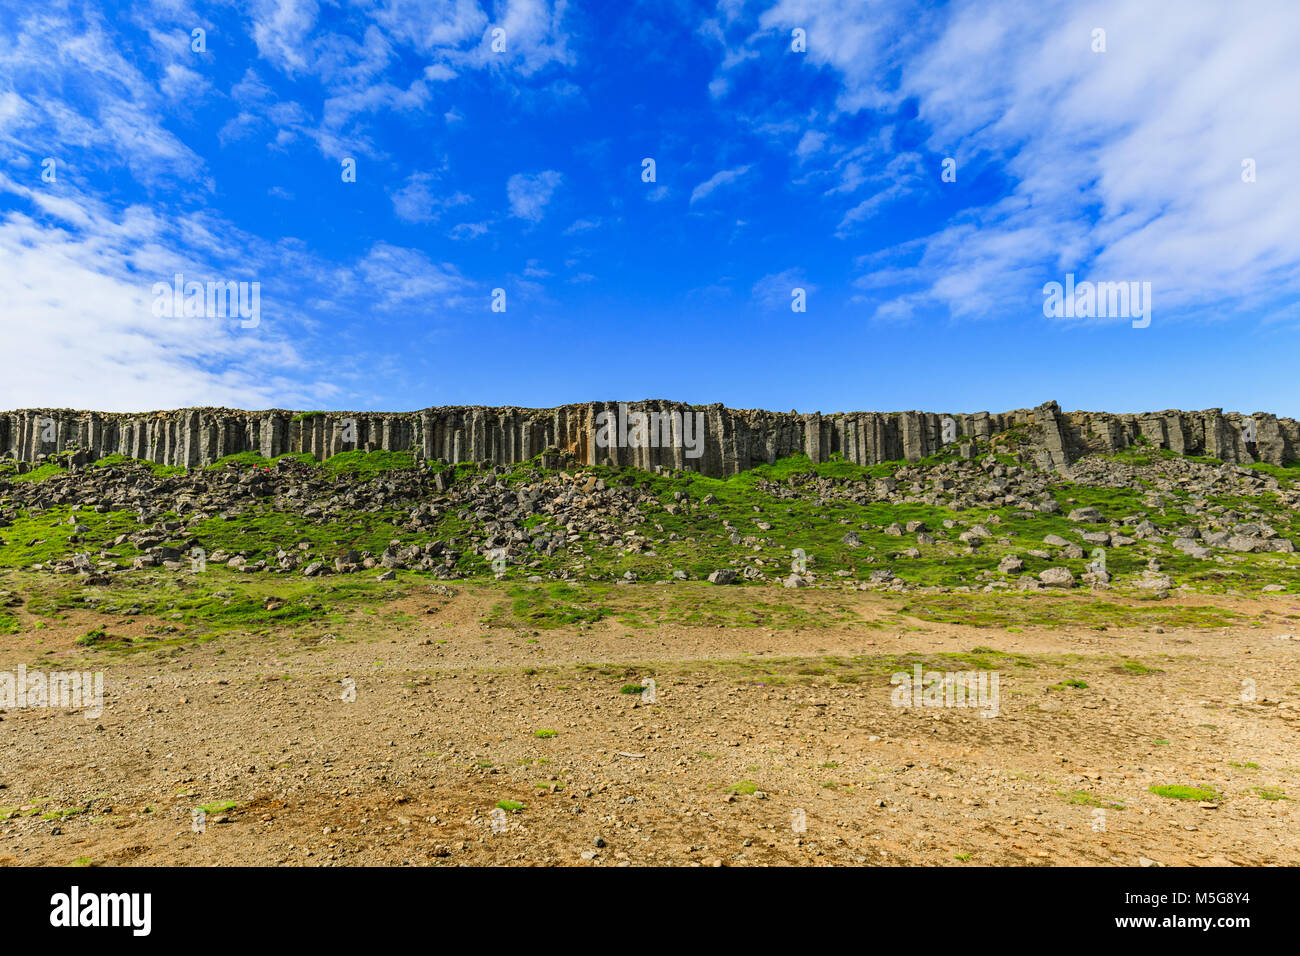 The basalt gerduberg cliffs located in west iceland - Stock Image